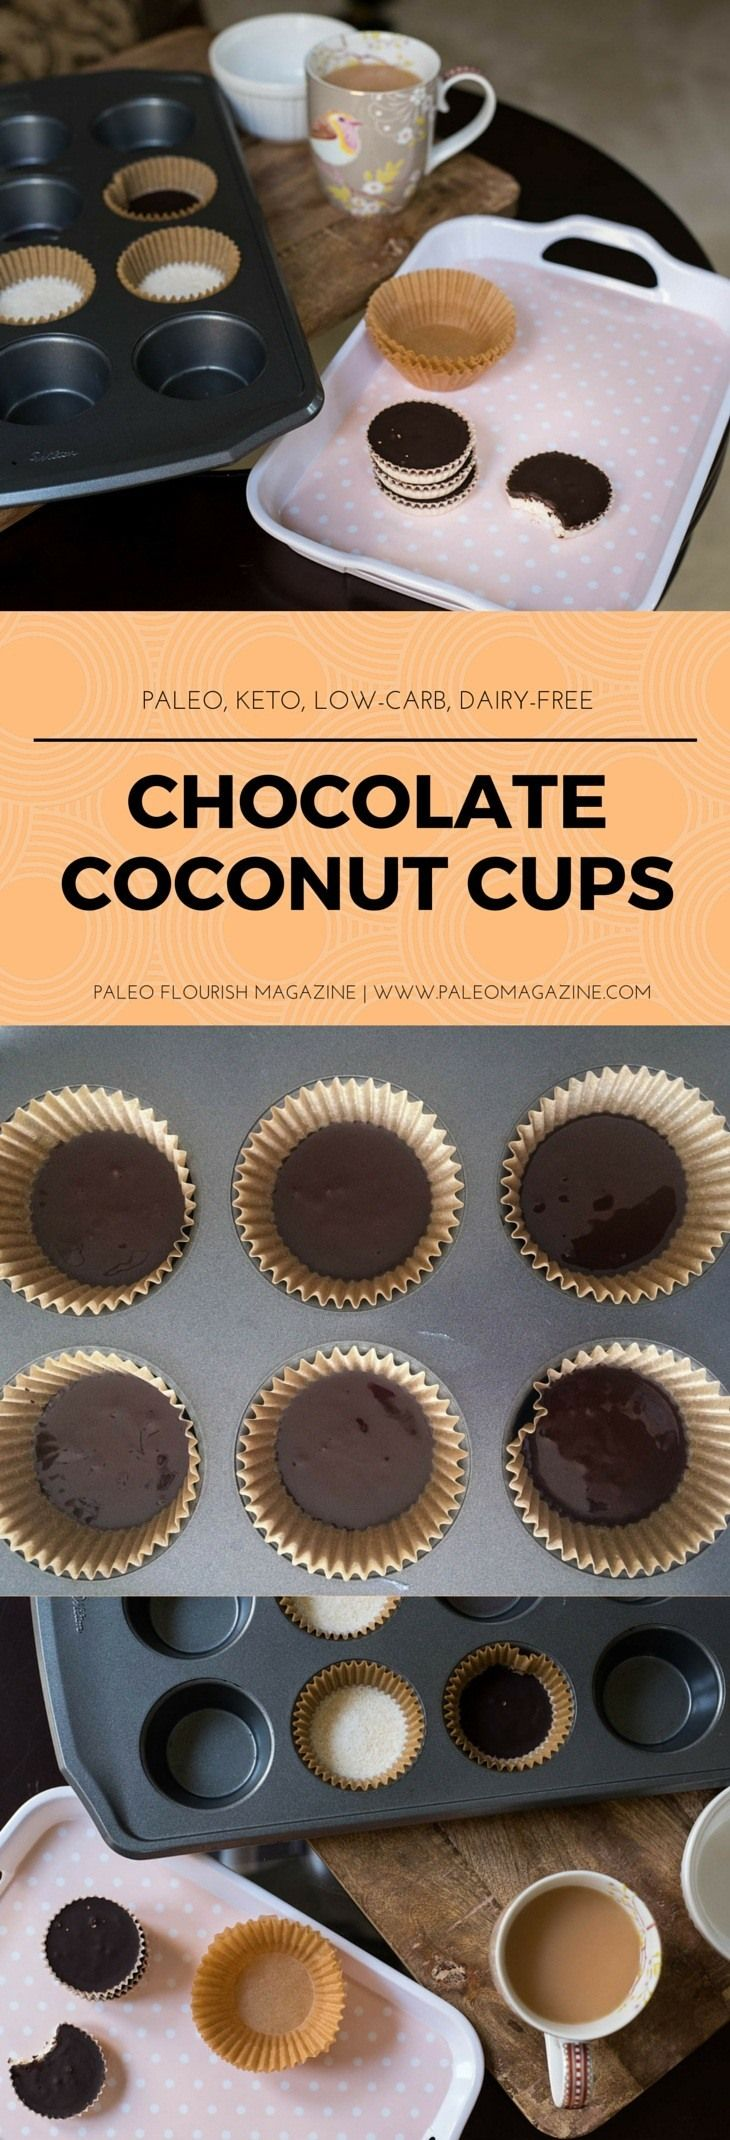 Chocolate Coconut Cups Recipe [Paleo, Keto, Low-Carb, Dairy-Free] #paleo #recipes #glutenfree http://paleomagazine.com/chocolate-coconut-cups-recipe-paleo-keto-lowcarb-dairyfree